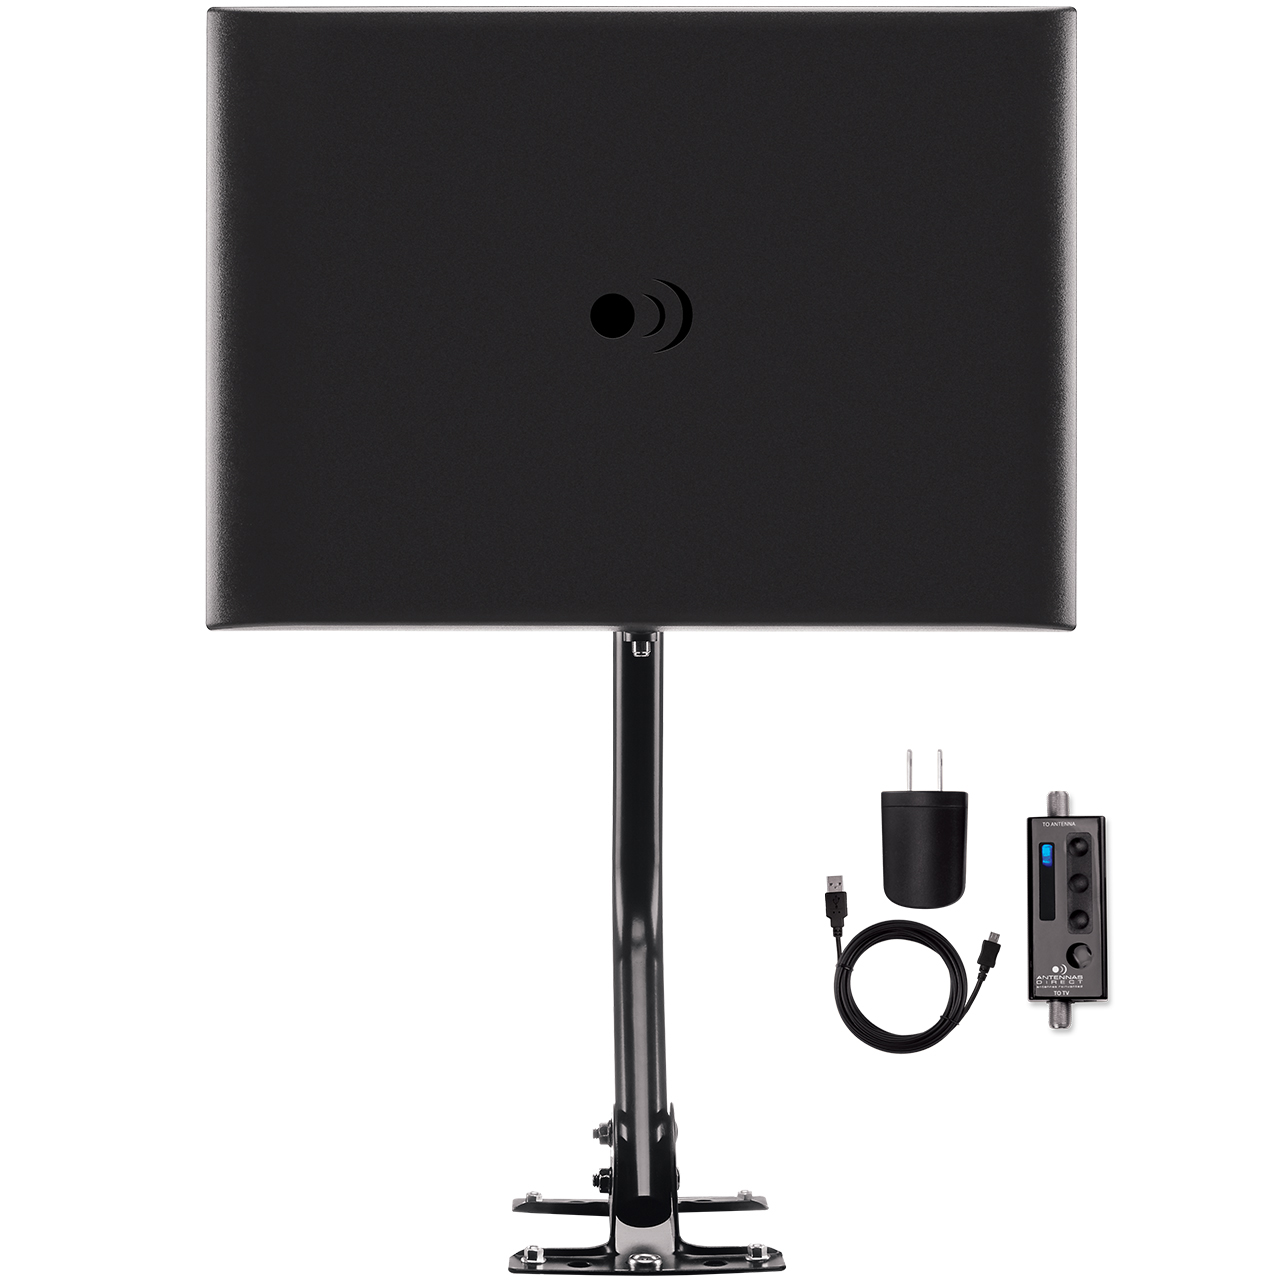 https://www.antennasdirect.com - ClearStream FUSION Amplified UHF VHF Indoor Outdoor HDTV Antenna 49.99 USD